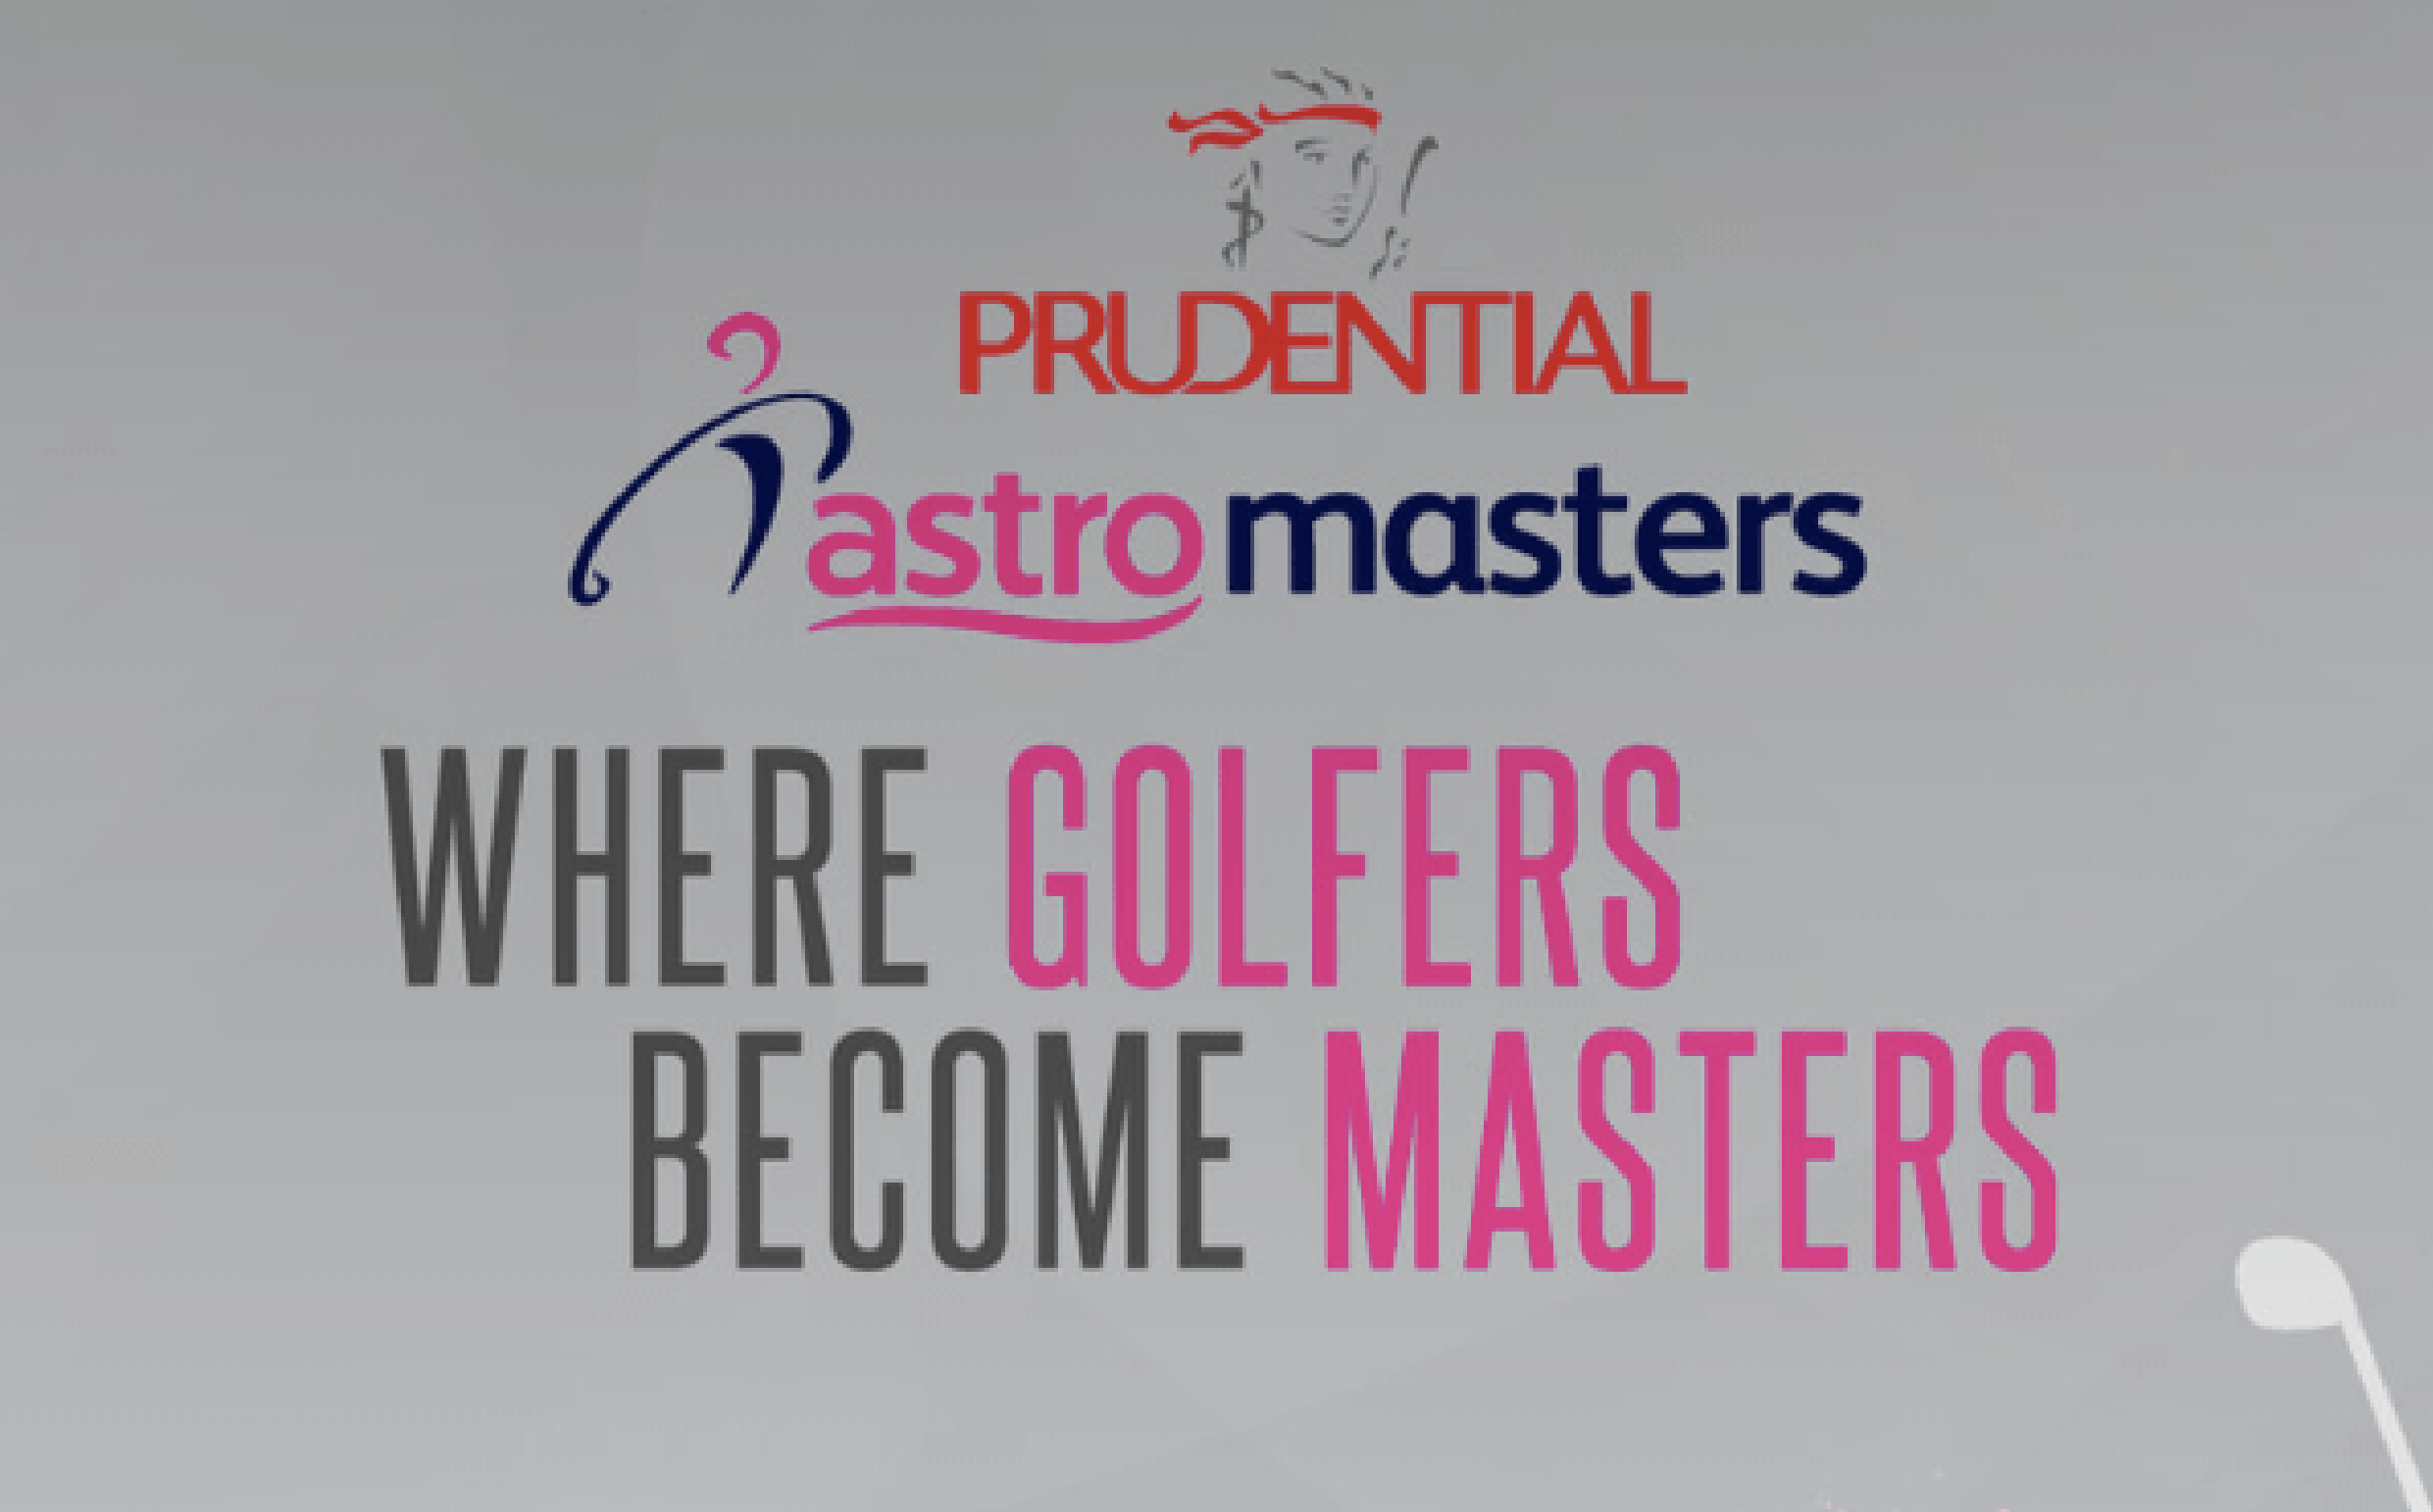 Prudential Astro Masters PAM 2018